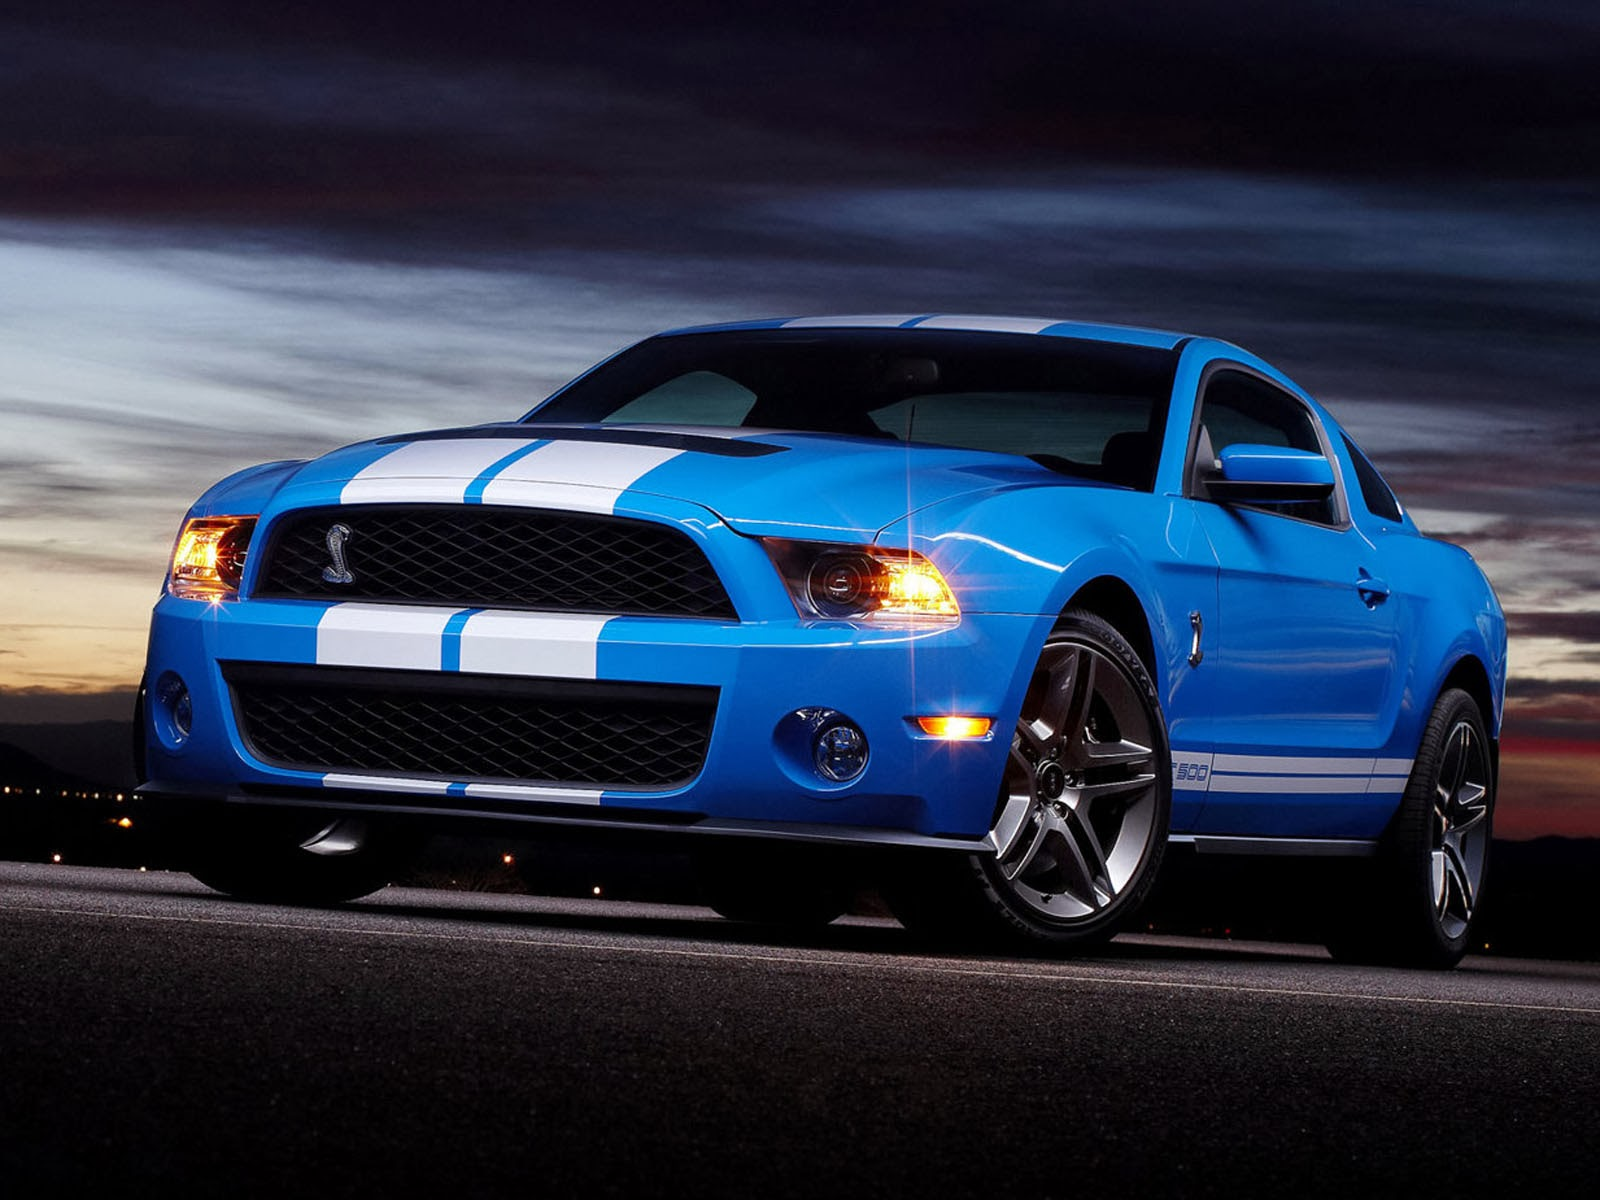 ford mustang shelby gt500 car wallpapers amazing picture collection. Black Bedroom Furniture Sets. Home Design Ideas